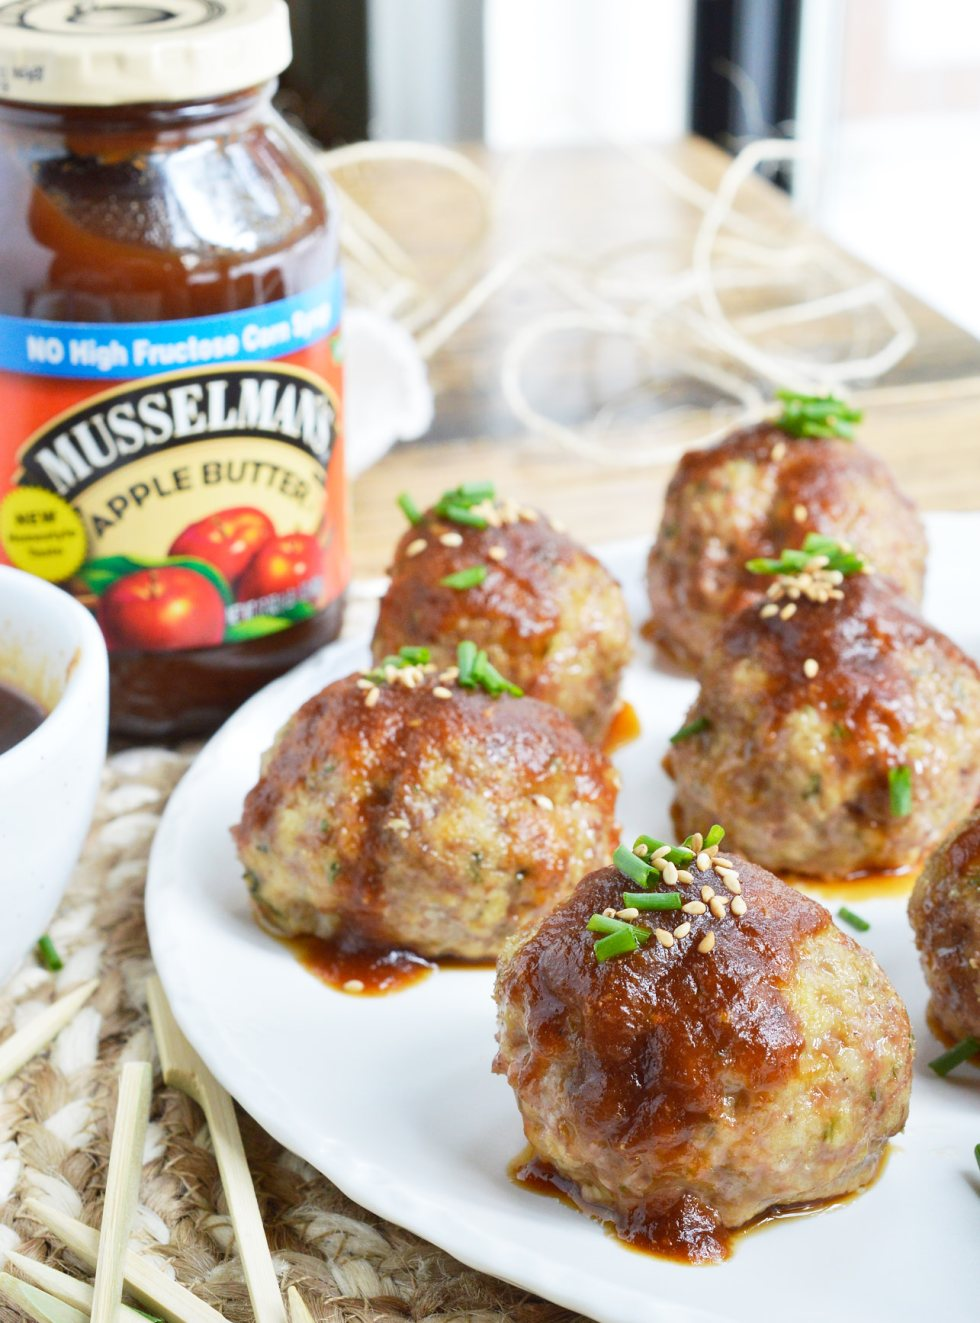 These Saucy Asian Meatballs are perfect for parties! This easy appetizer recipe is a combo of baked meatballs and a sweet ginger sauce that takes just 10 minutes to make.